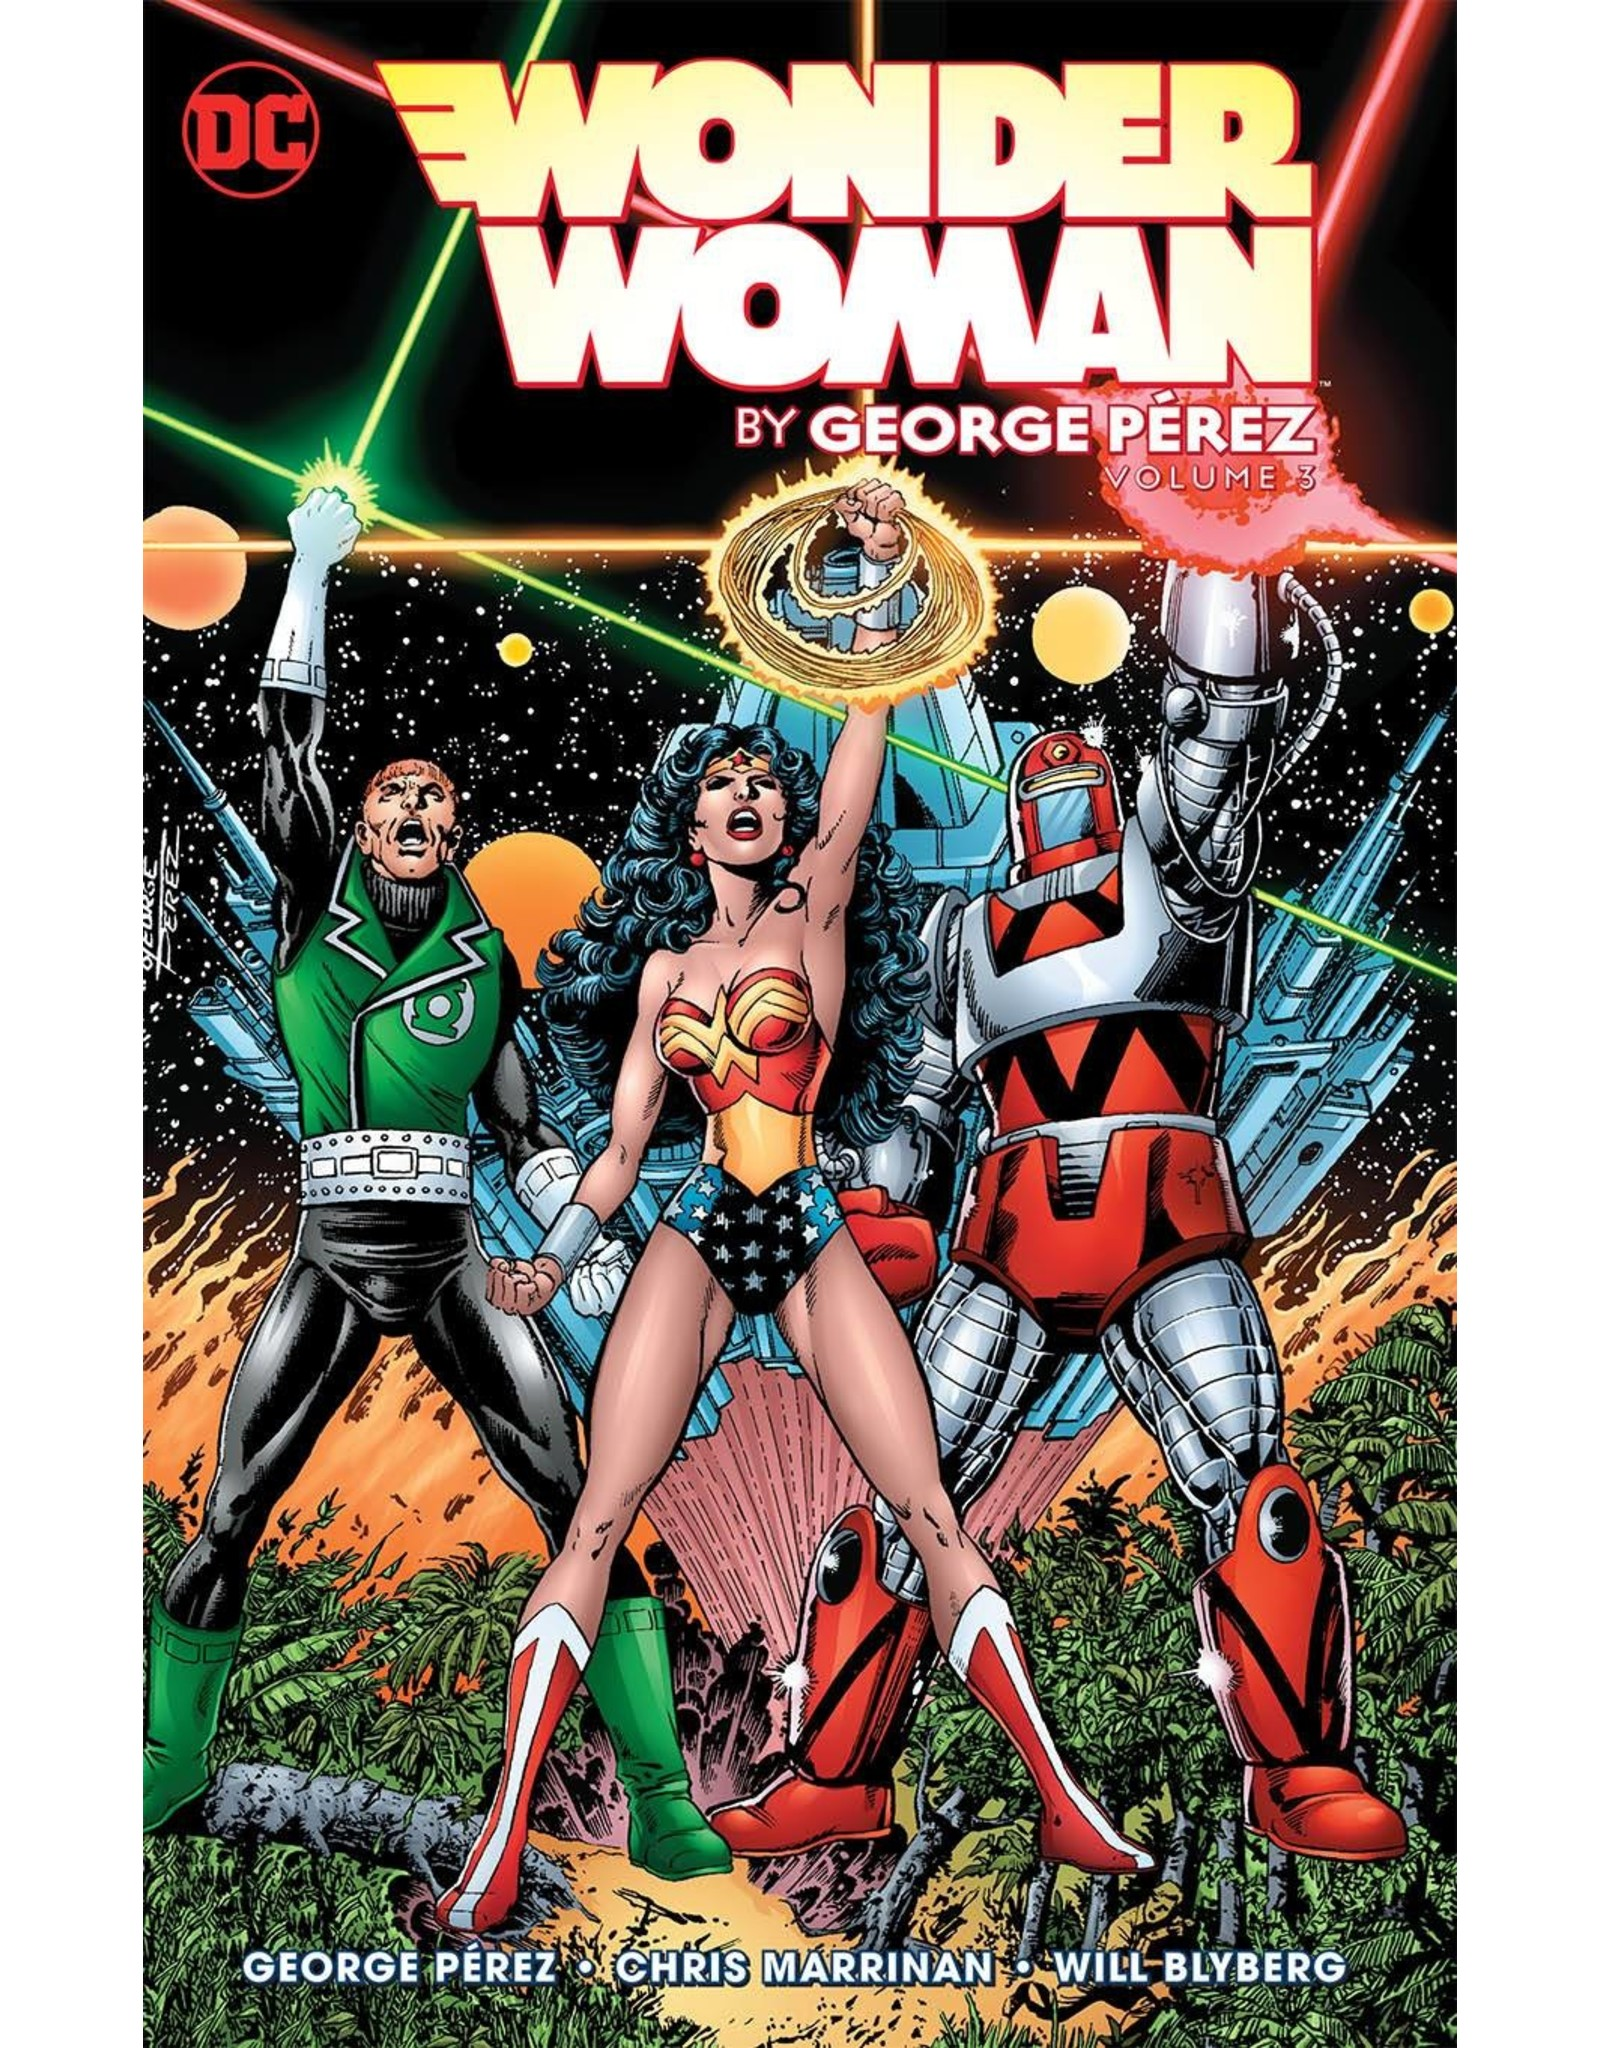 DC COMICS WONDER WOMAN BY GEORGE PEREZ TP VOL 03